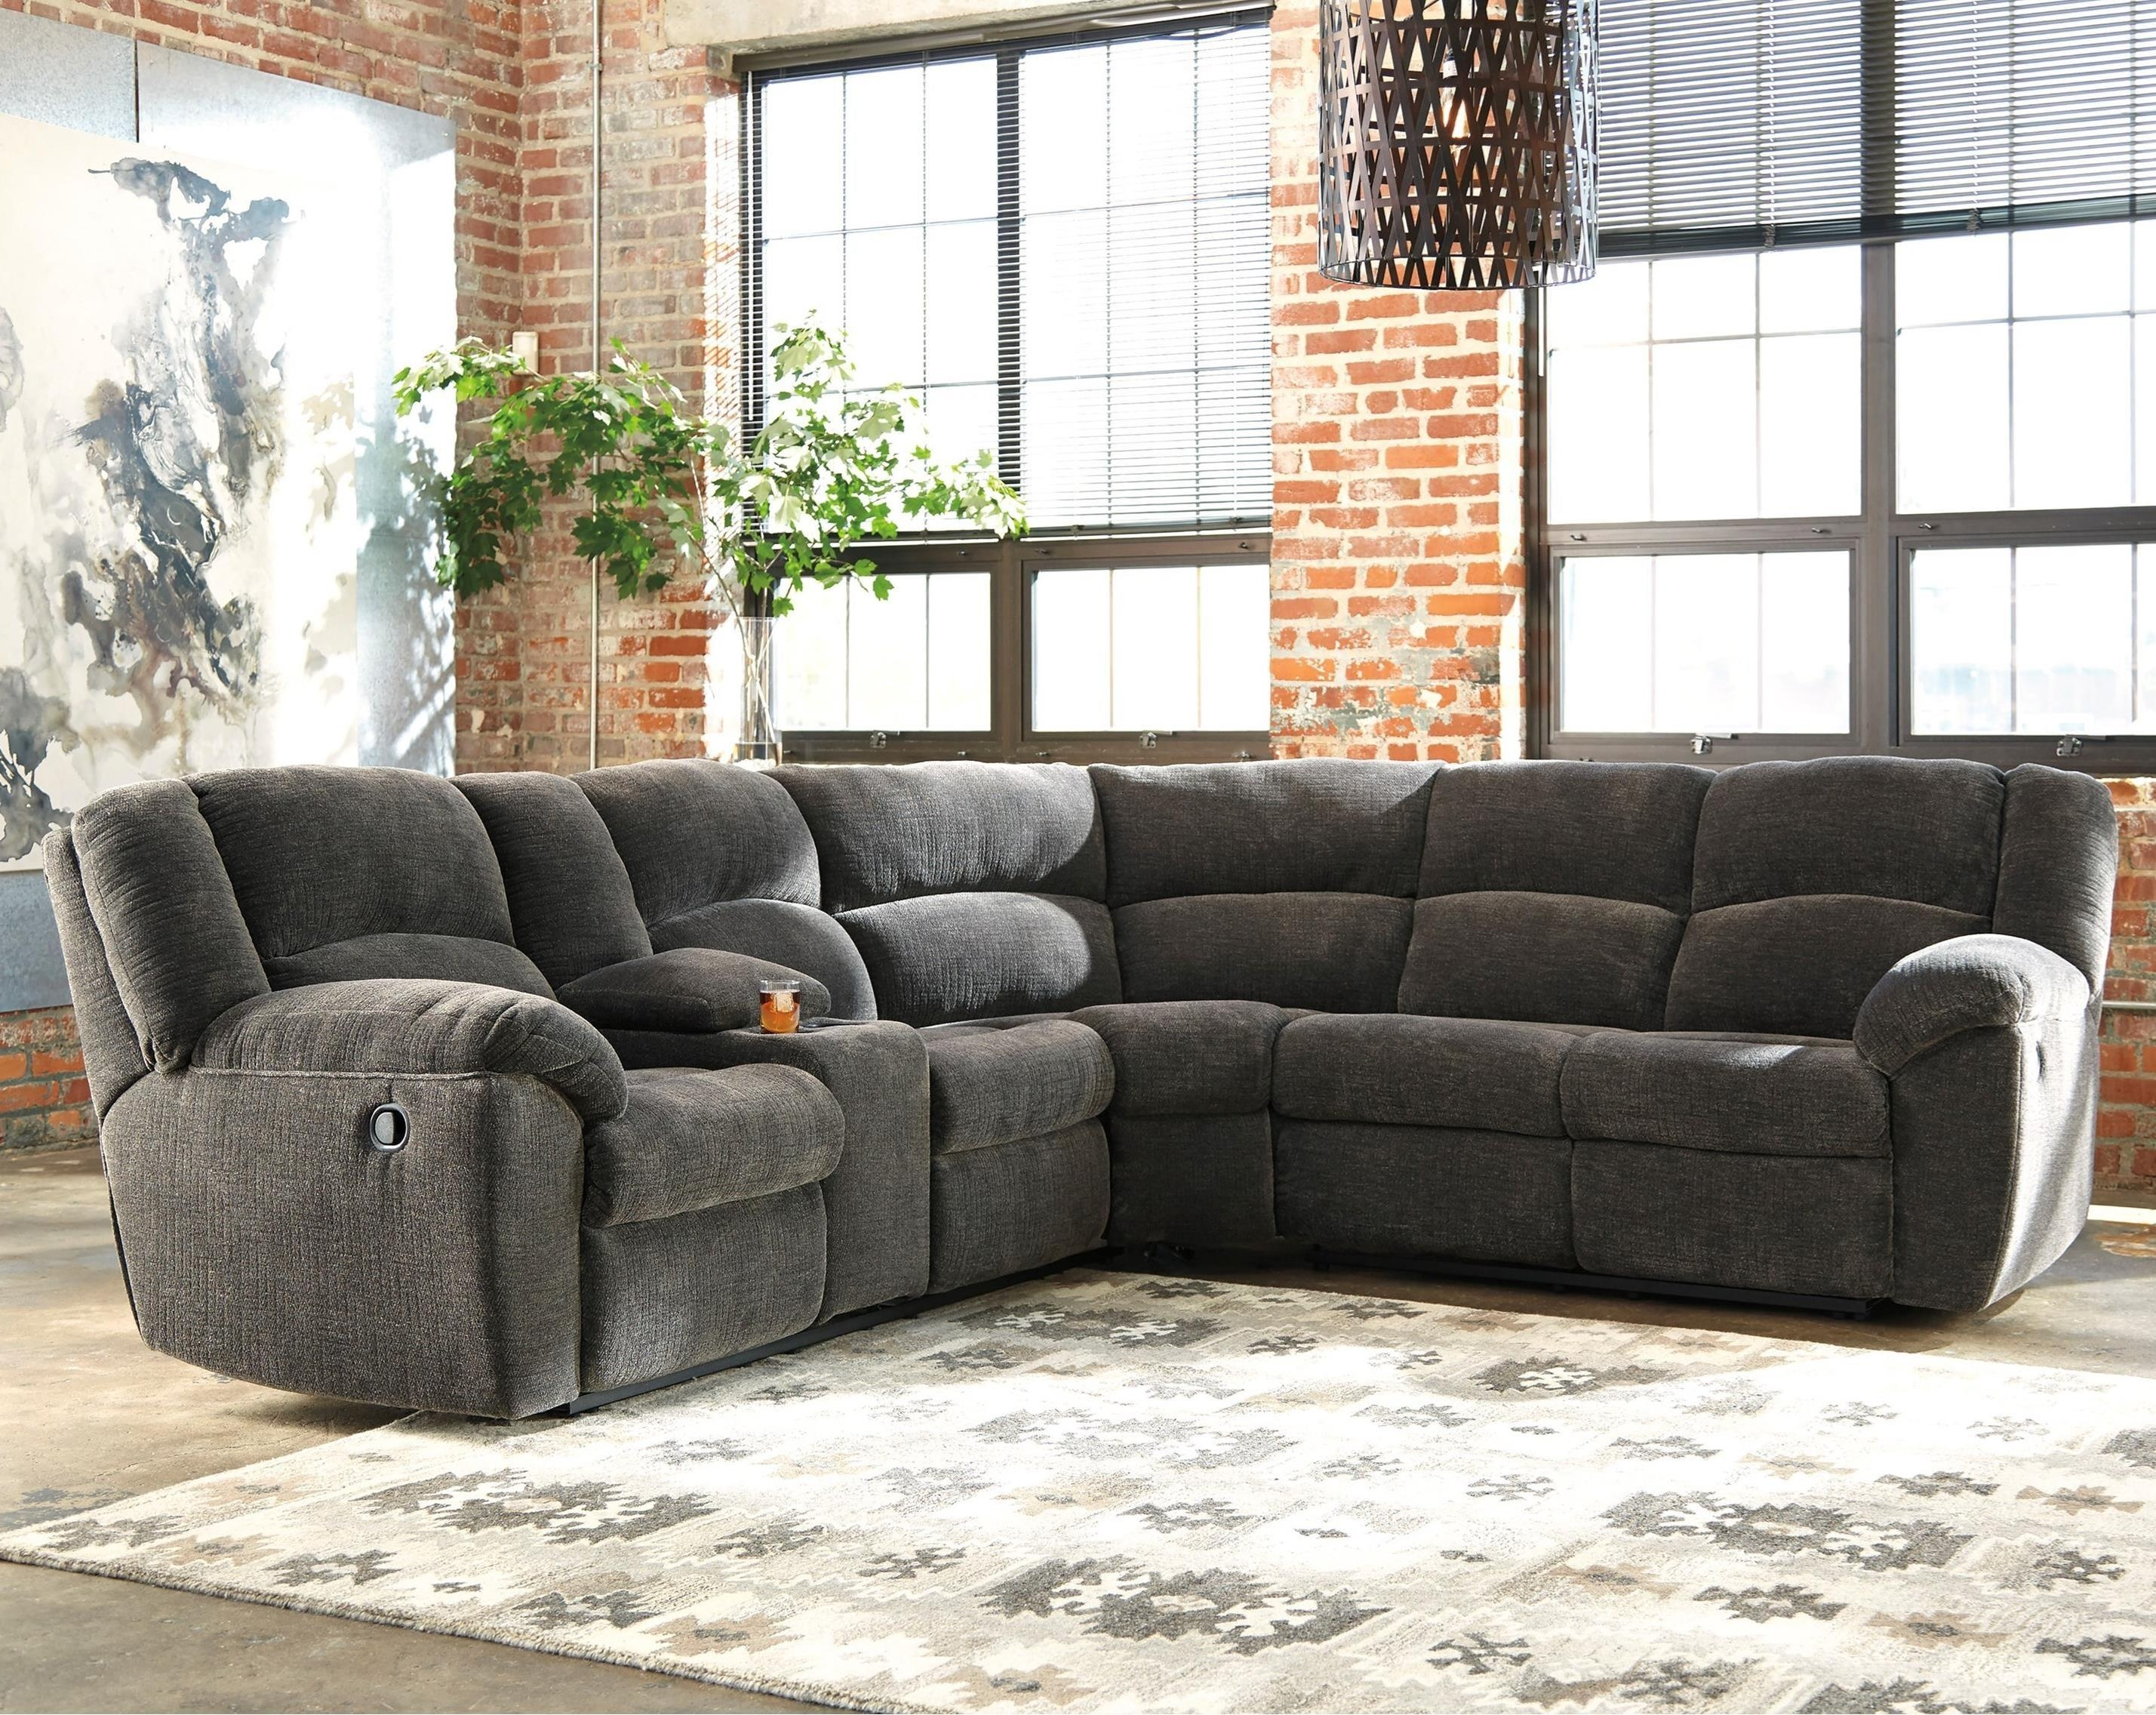 Benchcraft Timpson Reclining Sectional With Storage Console Within Recliner Sectional Sofas (Image 4 of 22)